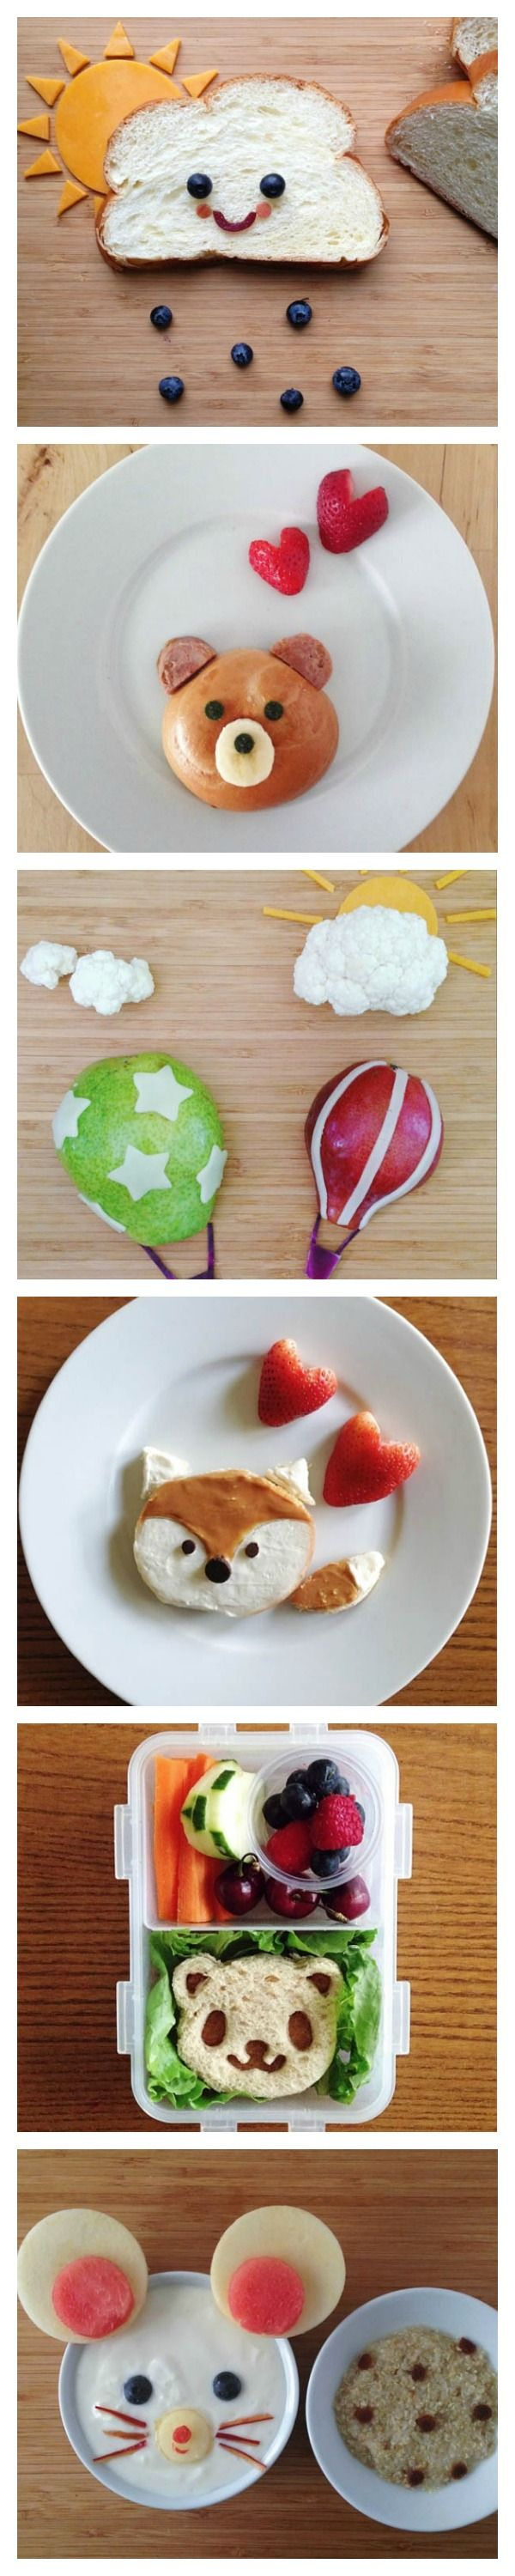 These fun lunchbox ideas are perfect for the kids.